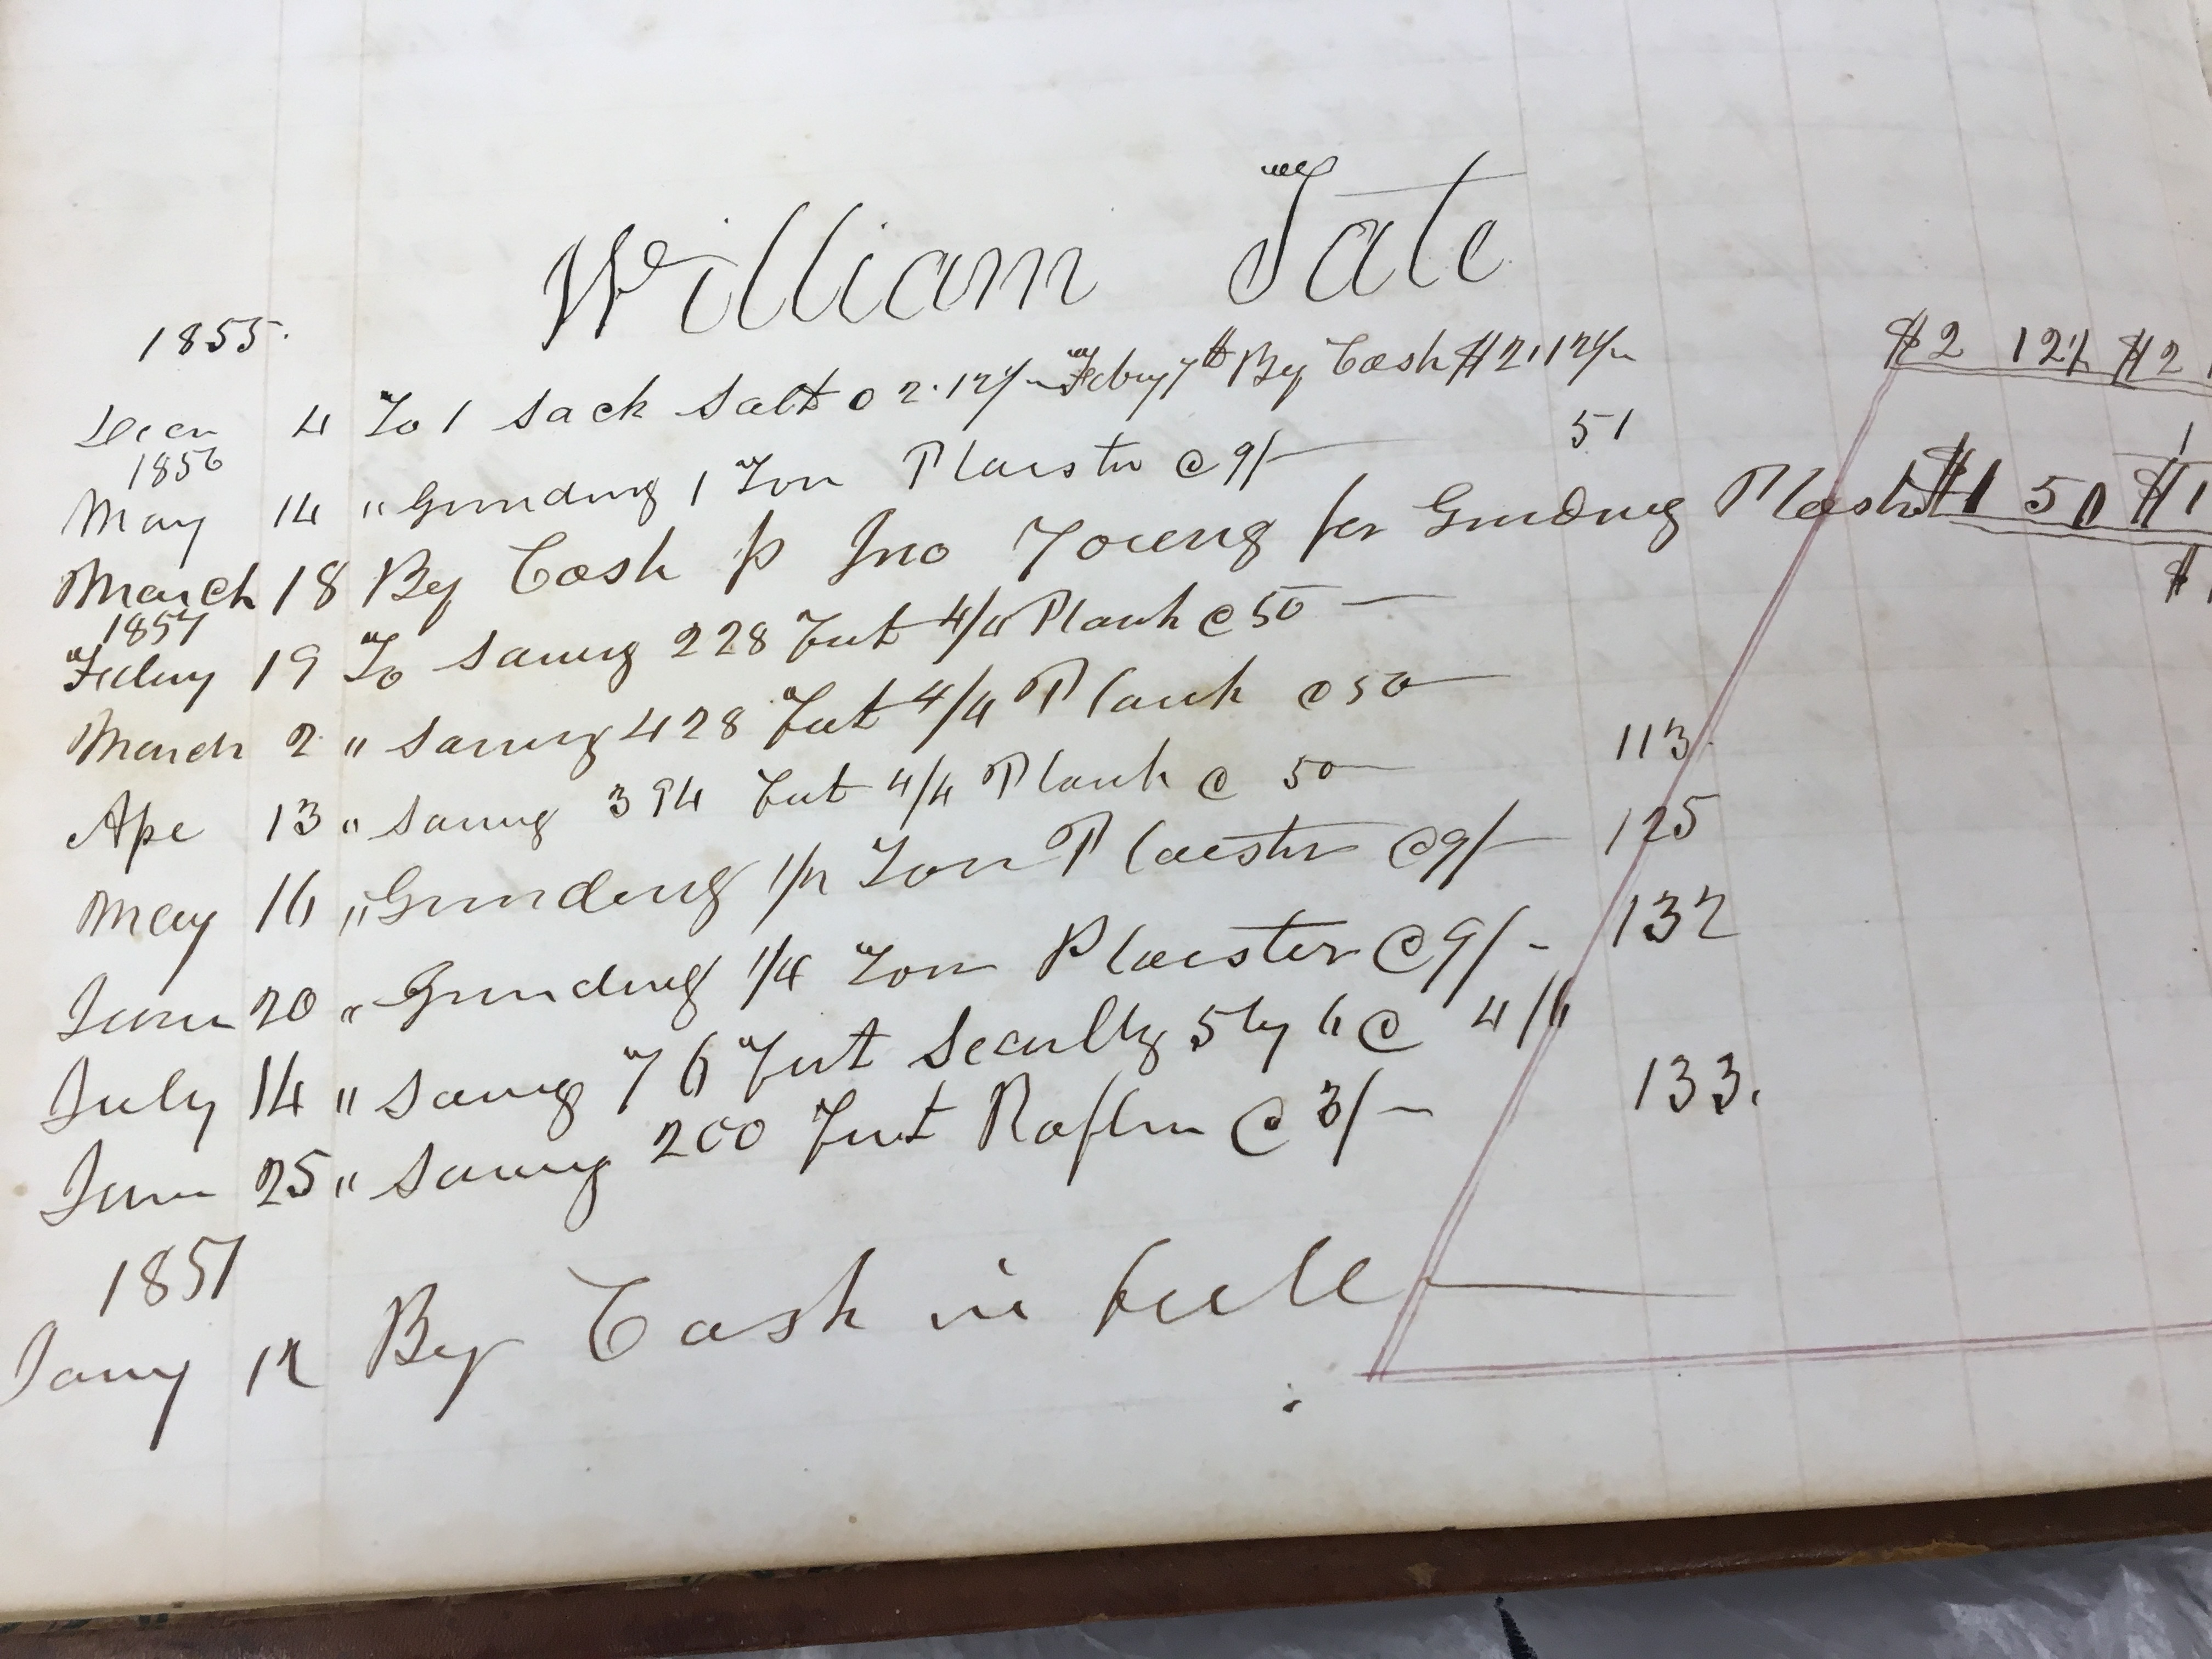 William Tate 1855 Watsons mill bill for plaster